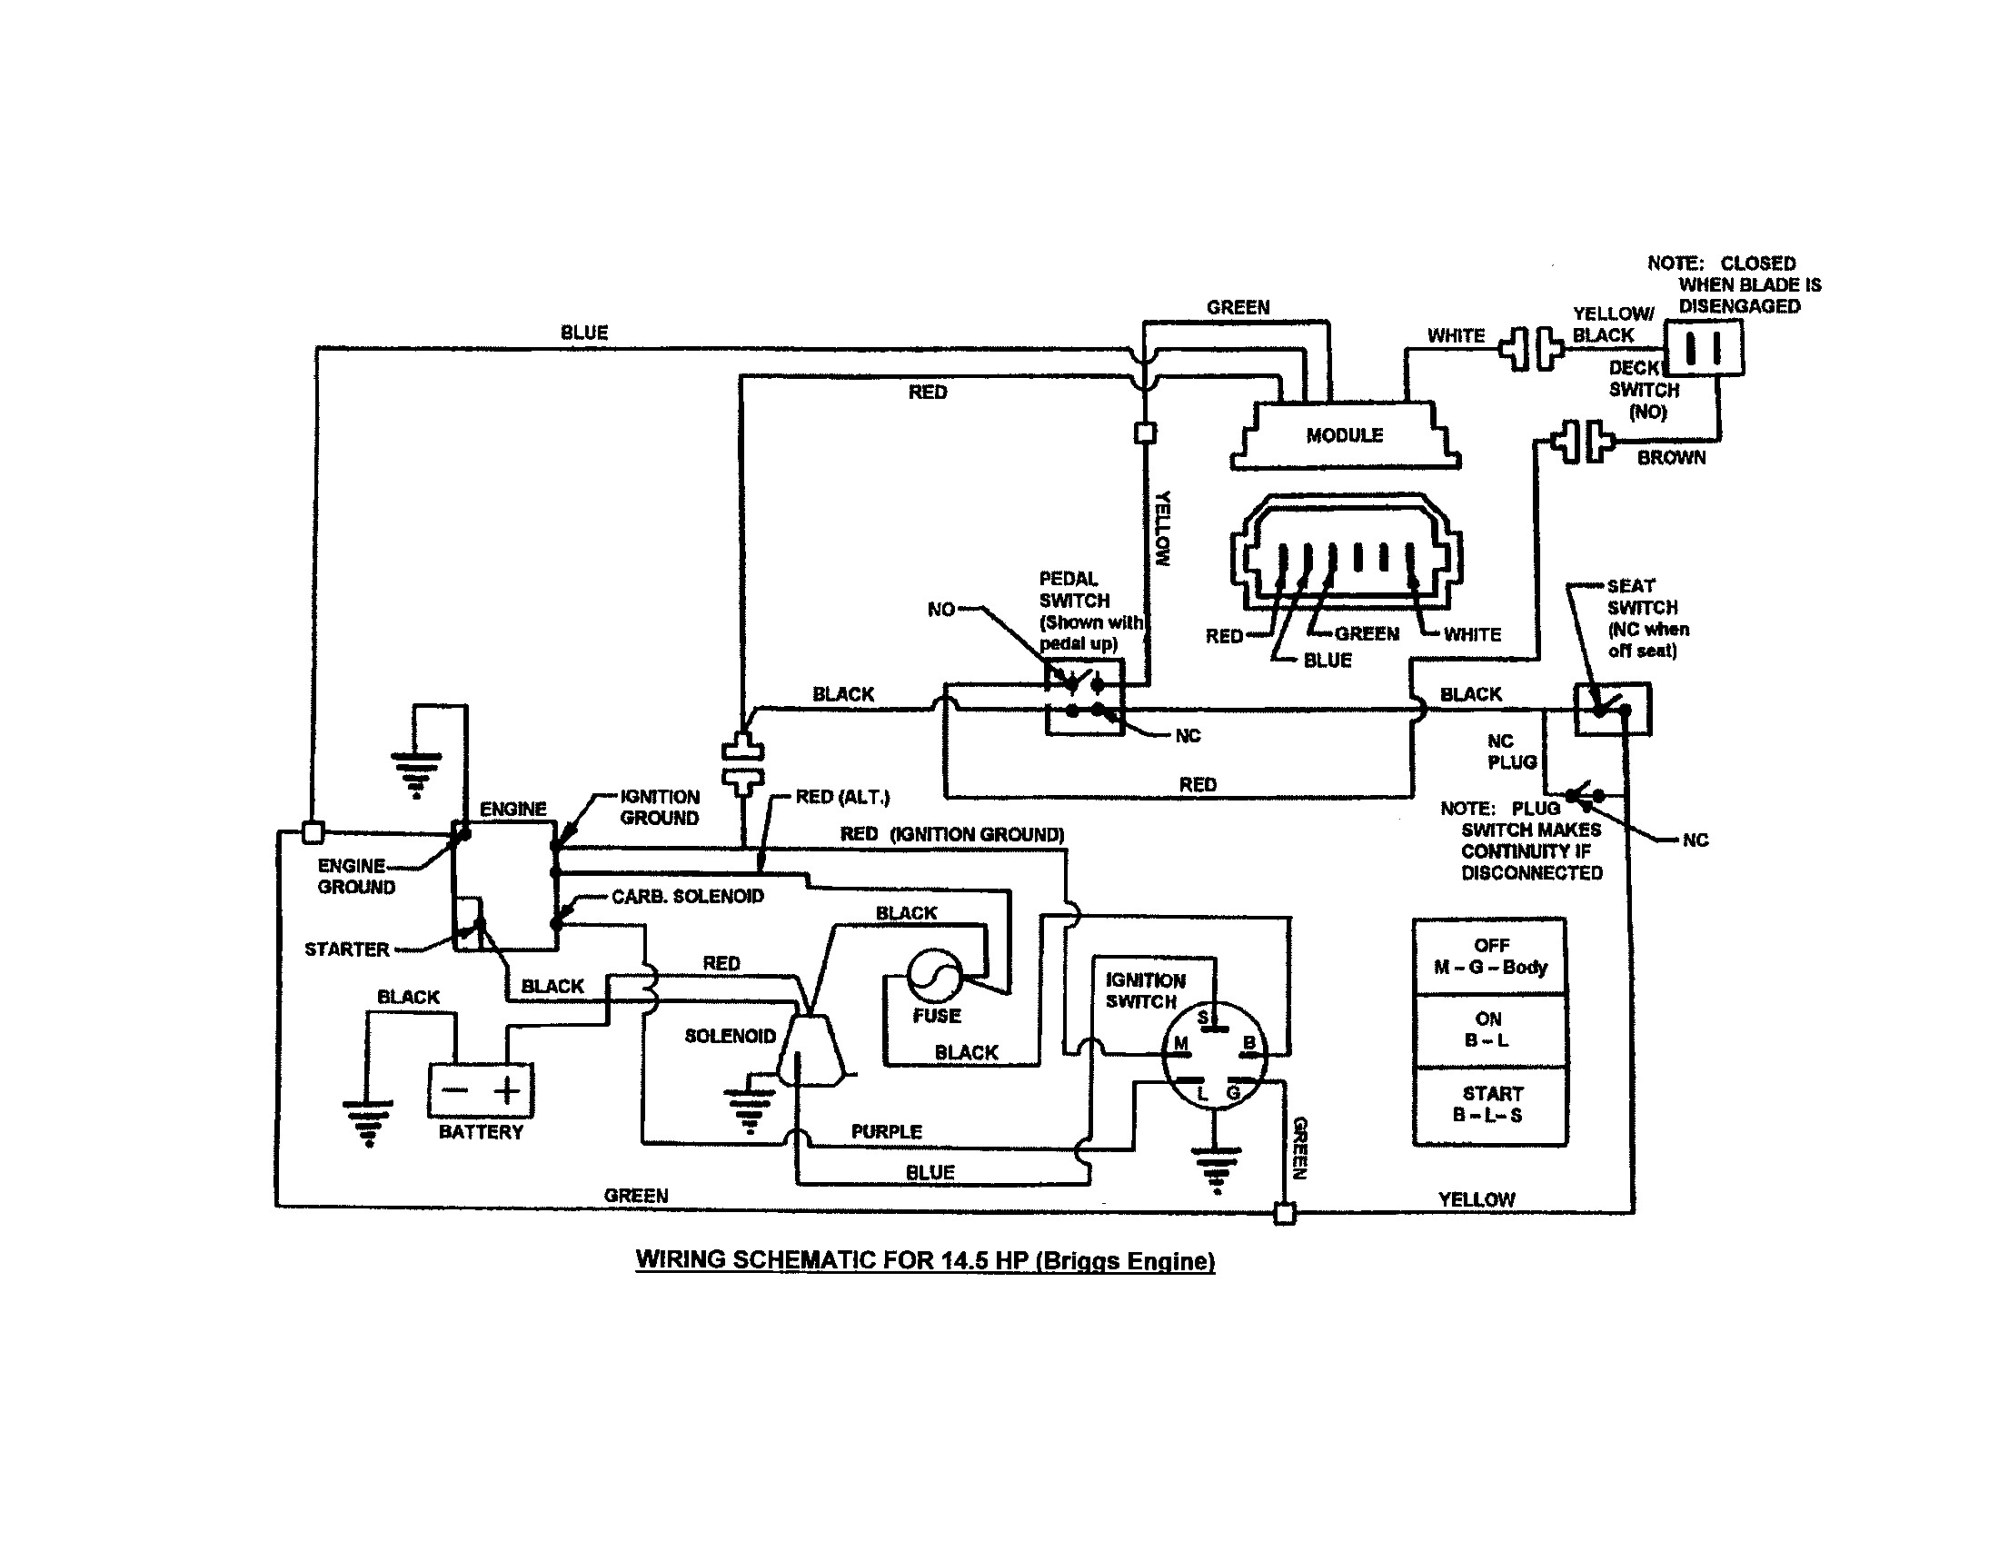 hight resolution of scotts wiring diagram wiring diagram schemes scott s s2348 parts scotts riding mower wiring diagram easy rules